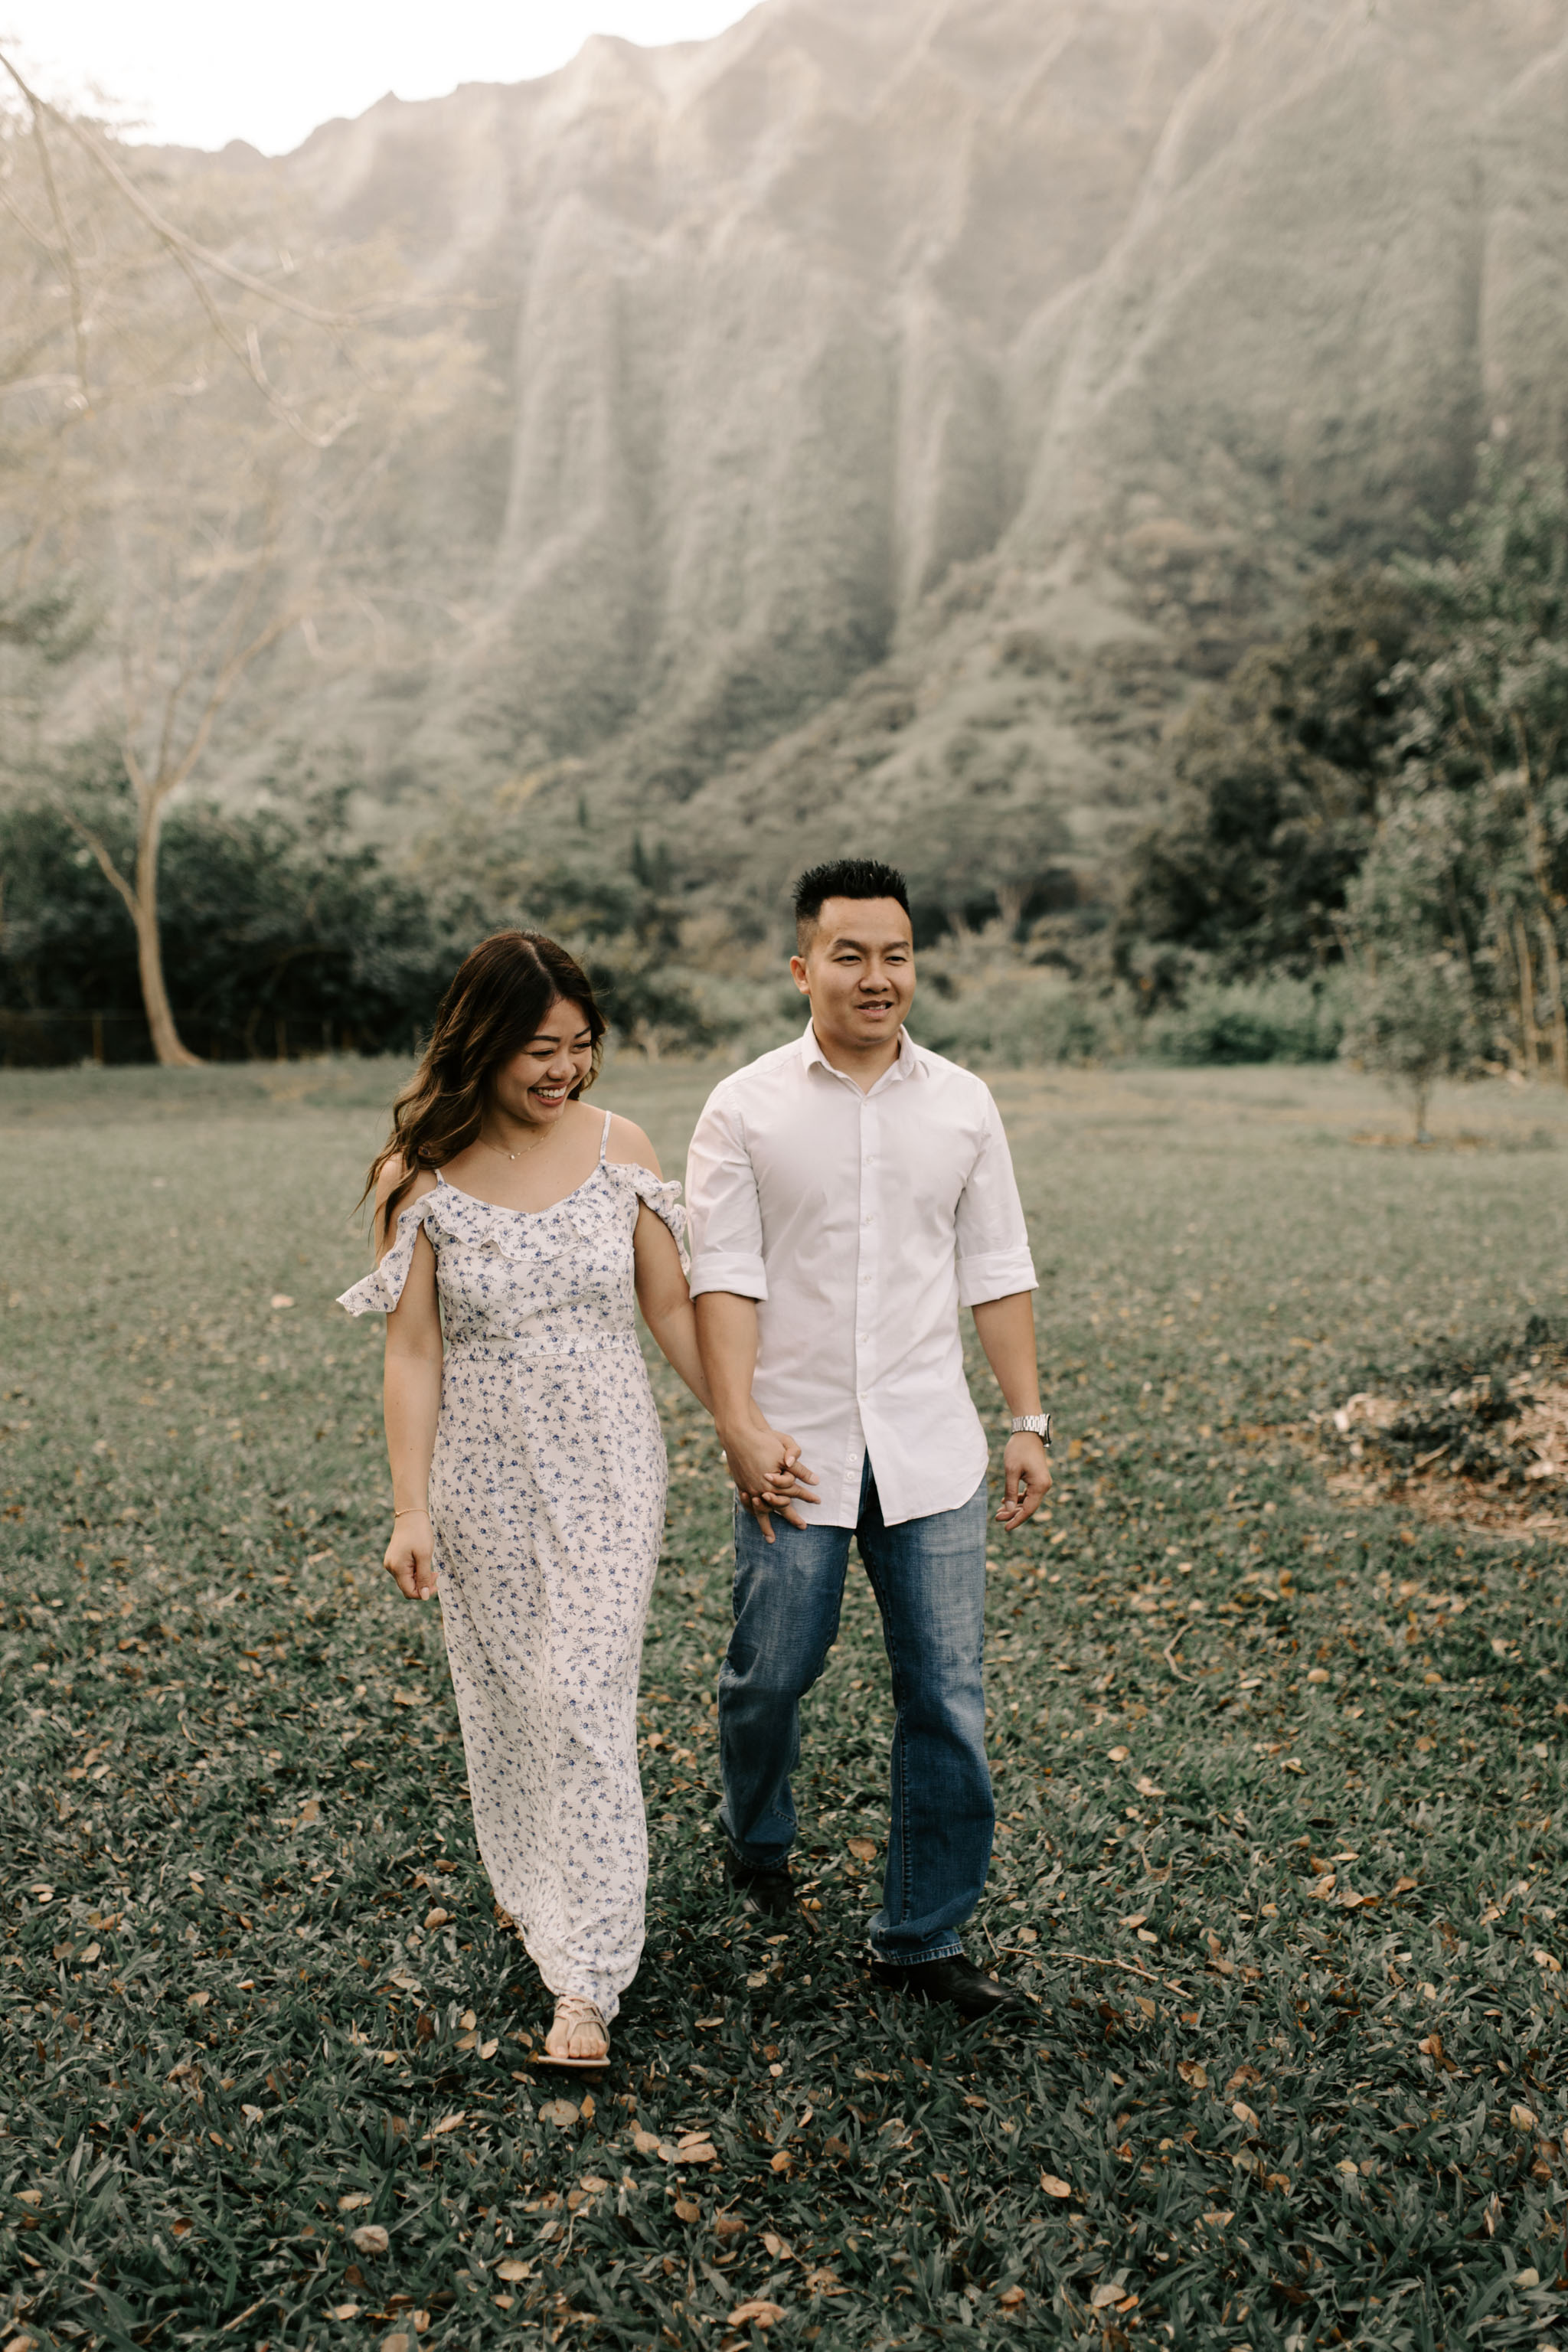 Beautiful Engagement Photos at Hoomaluhia Botanical Gardens by Hawaii Wedding Photographer Desiree Leilani